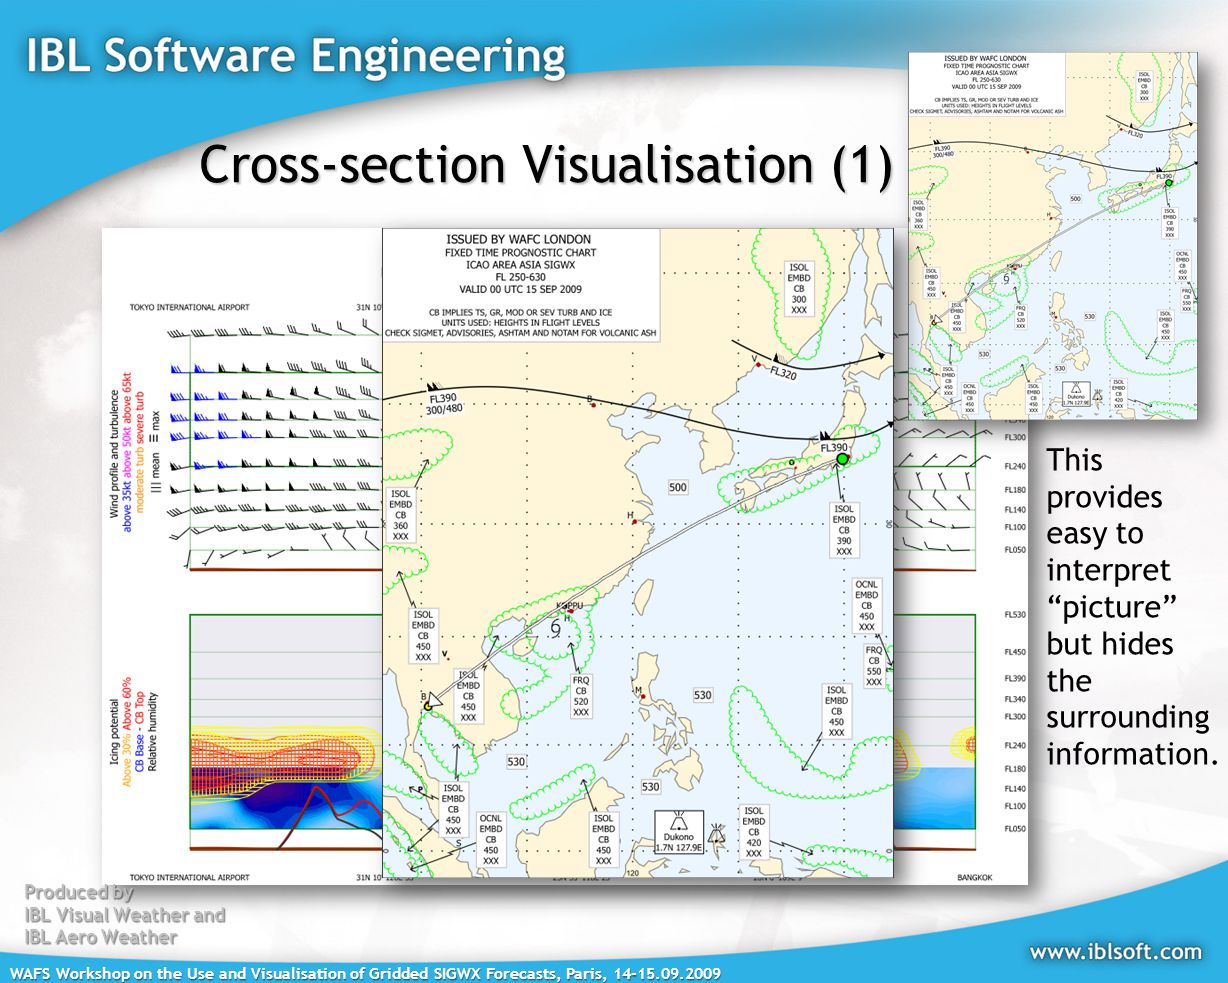 WAFS Workshop on the Use and Visualisation of Gridded SIGWX Forecasts, Paris, Cross-section Visualisation (1) Produced by IBL Visual Weather and IBL Aero Weather This provides easy to interpret picture but hides the surrounding information.